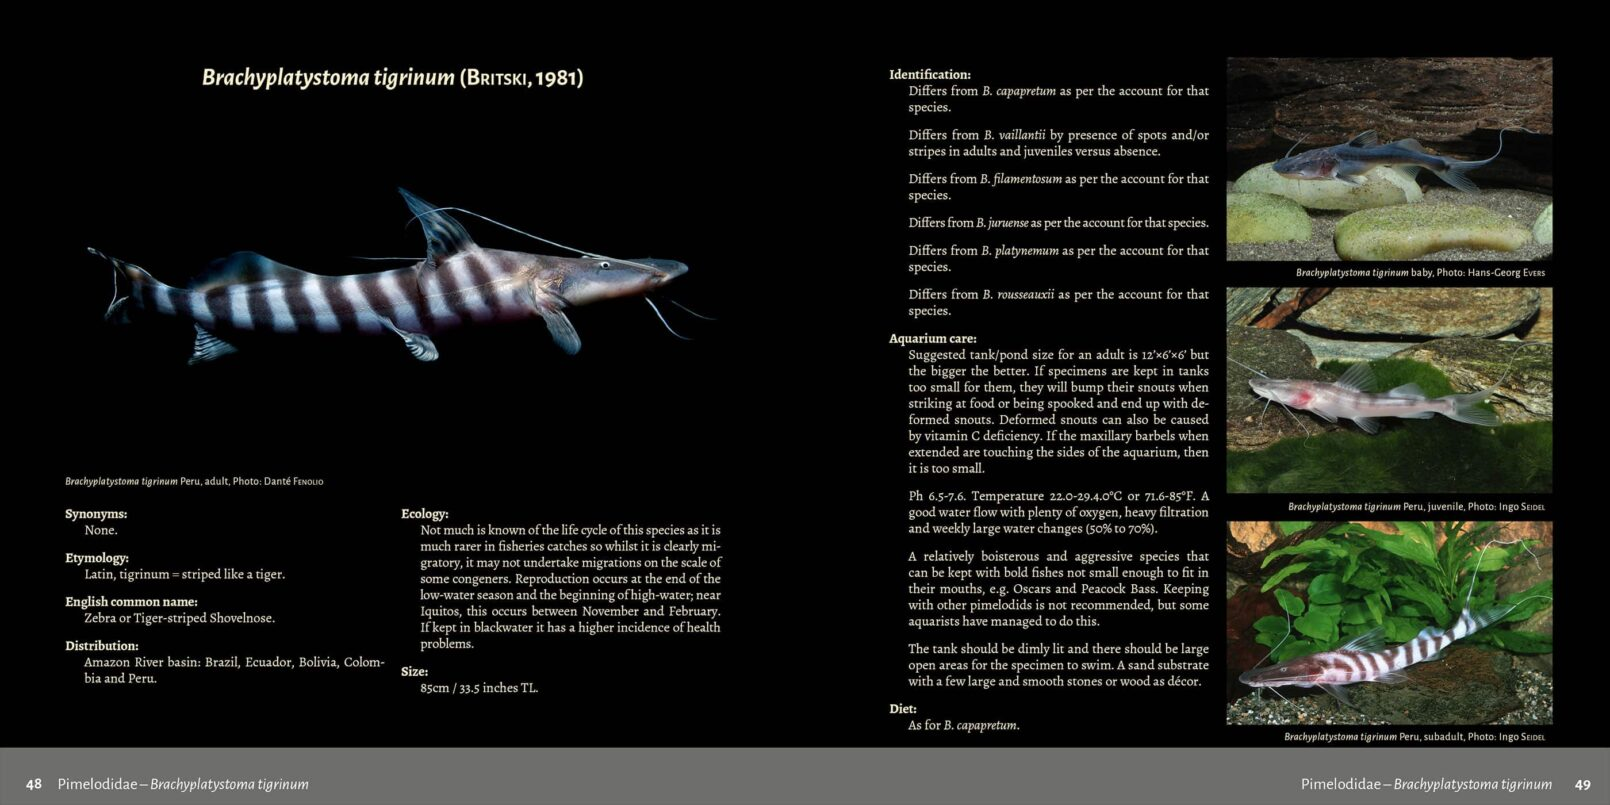 Pims - Pimelodidae,  Heptapteridae and  Pseudopimelodidae Catfishes / Steven Grant pages 48, 49